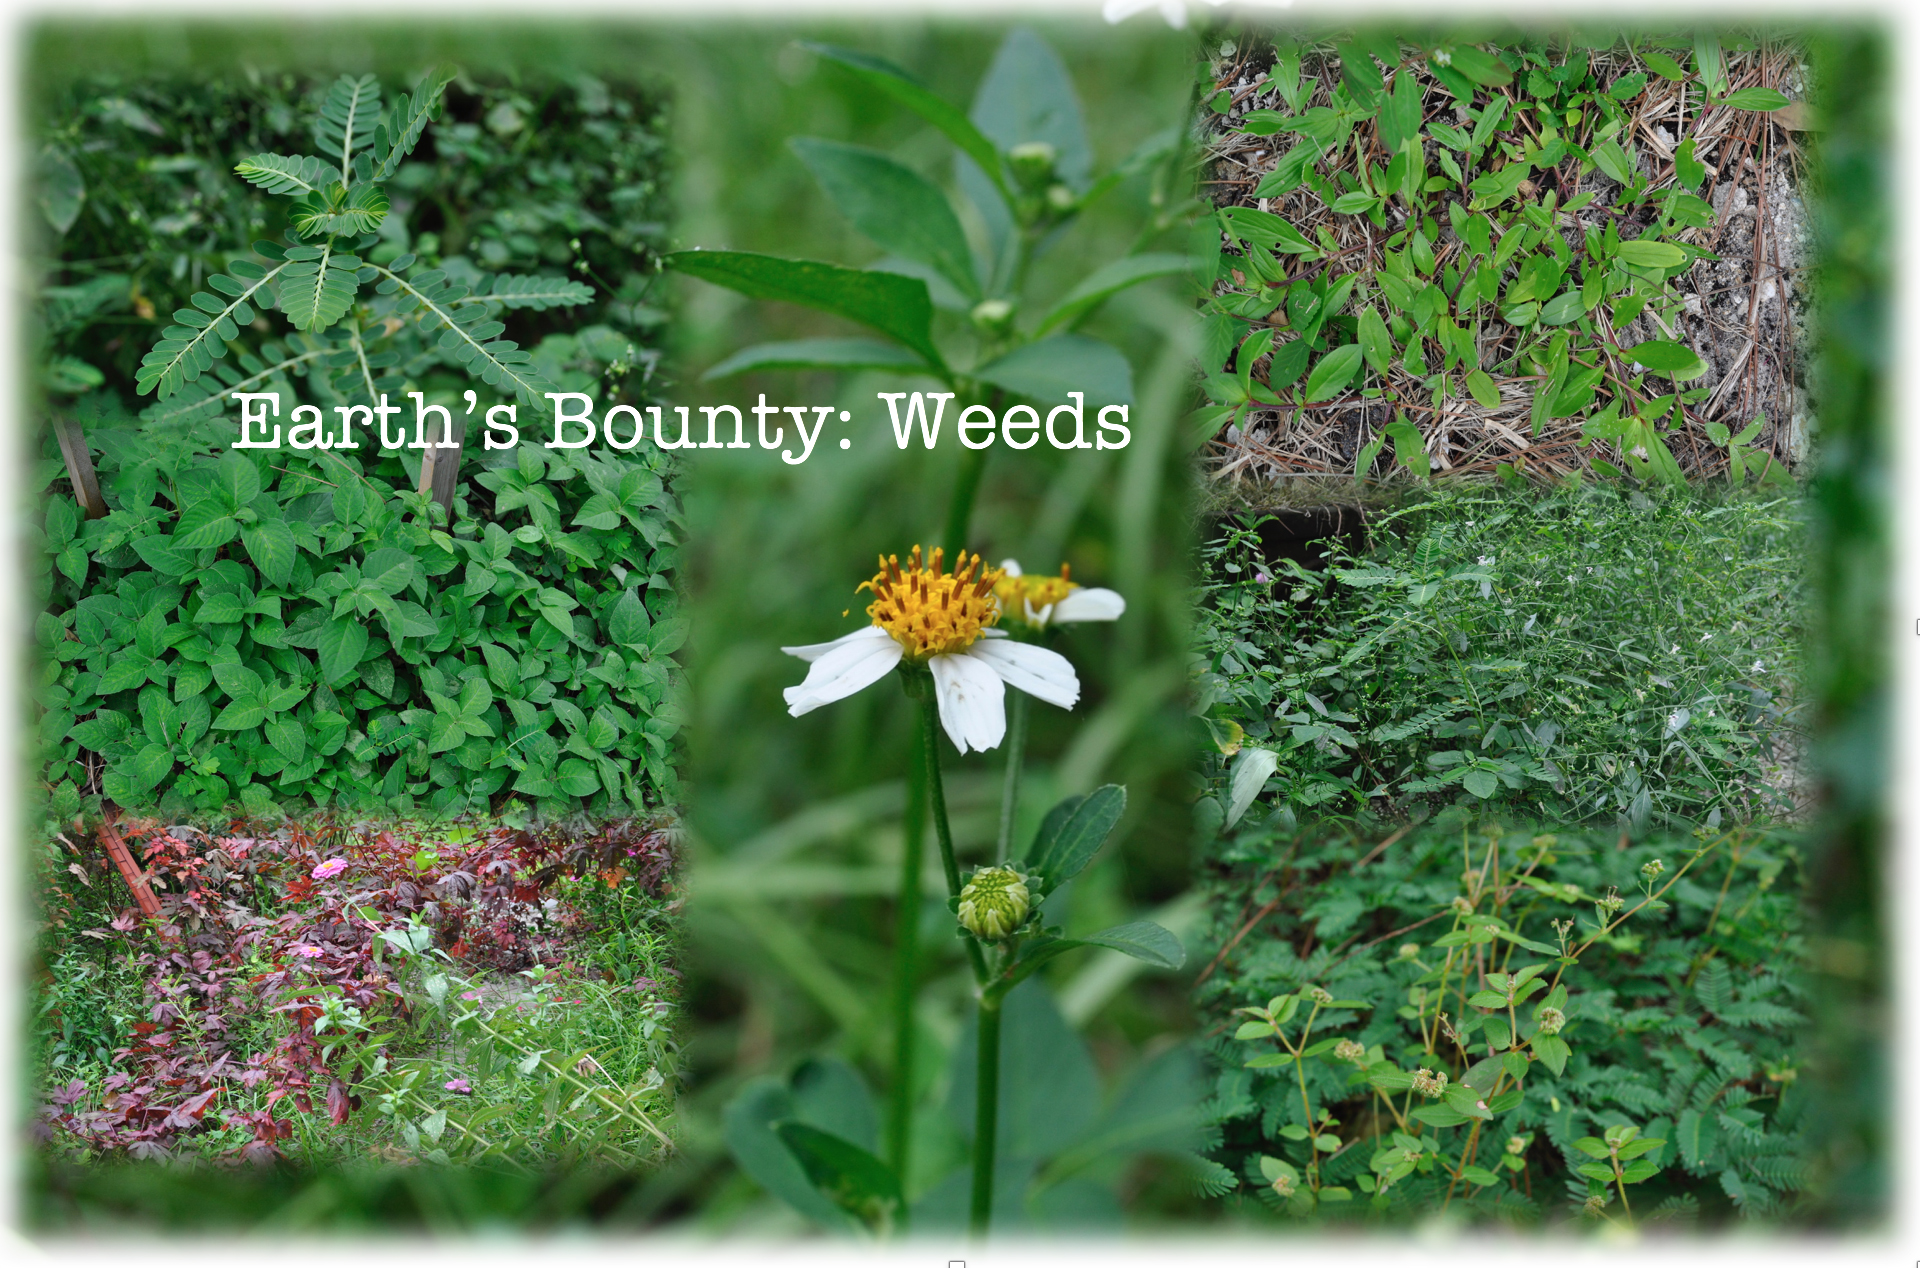 Weeds: The Earth's Bounty!